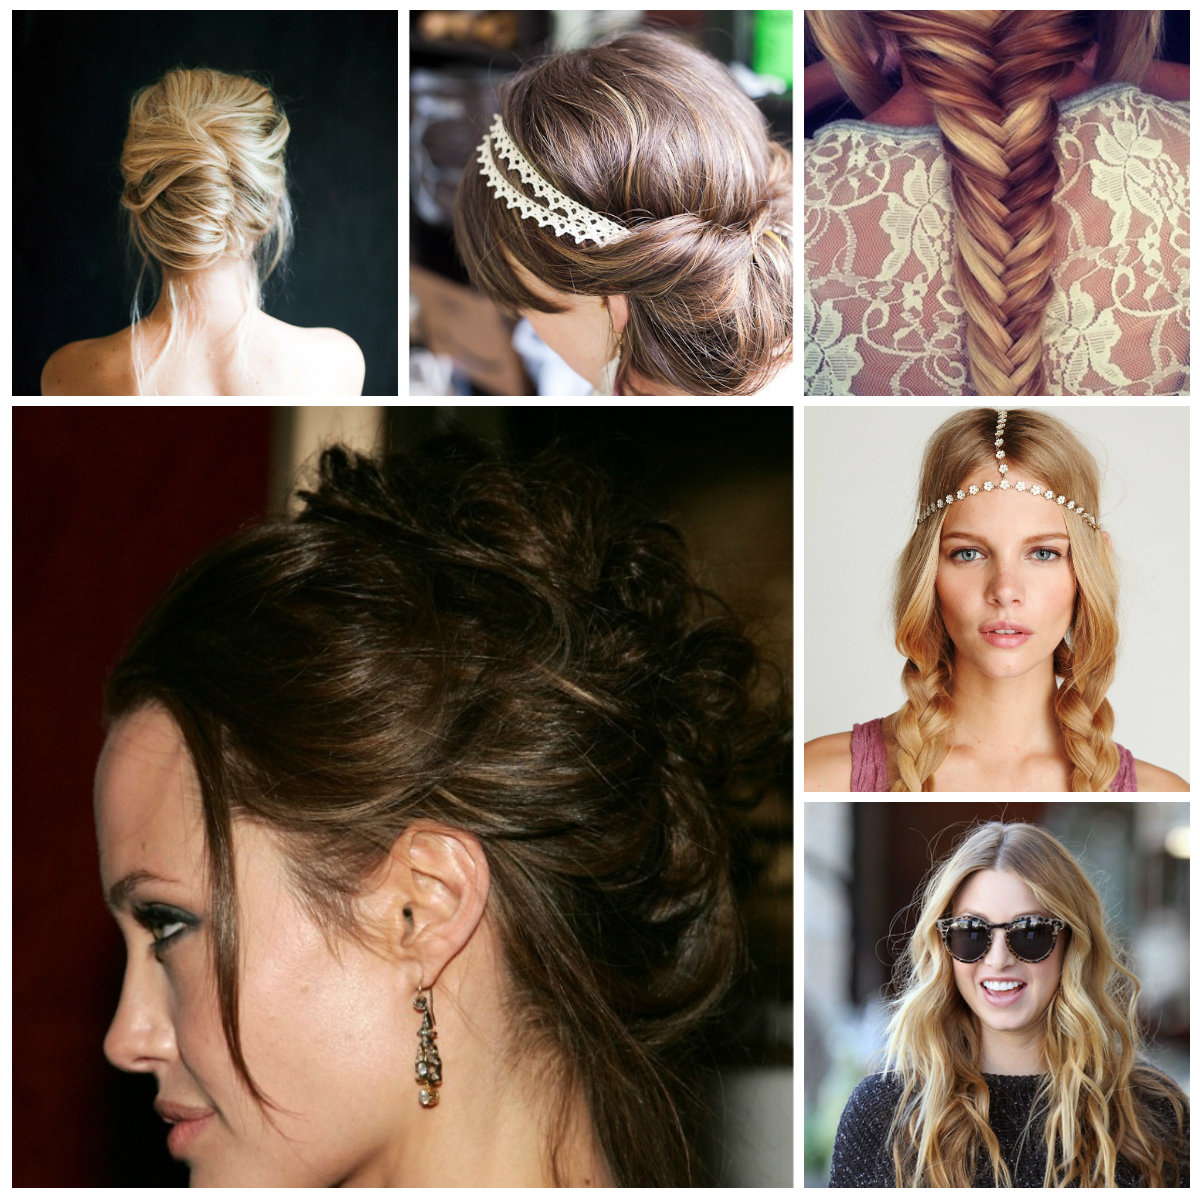 Amazing Bohemian Hair Ideas – Trendy Hairstyles 2019 For Long Within Bohemian Short Hairstyles (View 12 of 25)